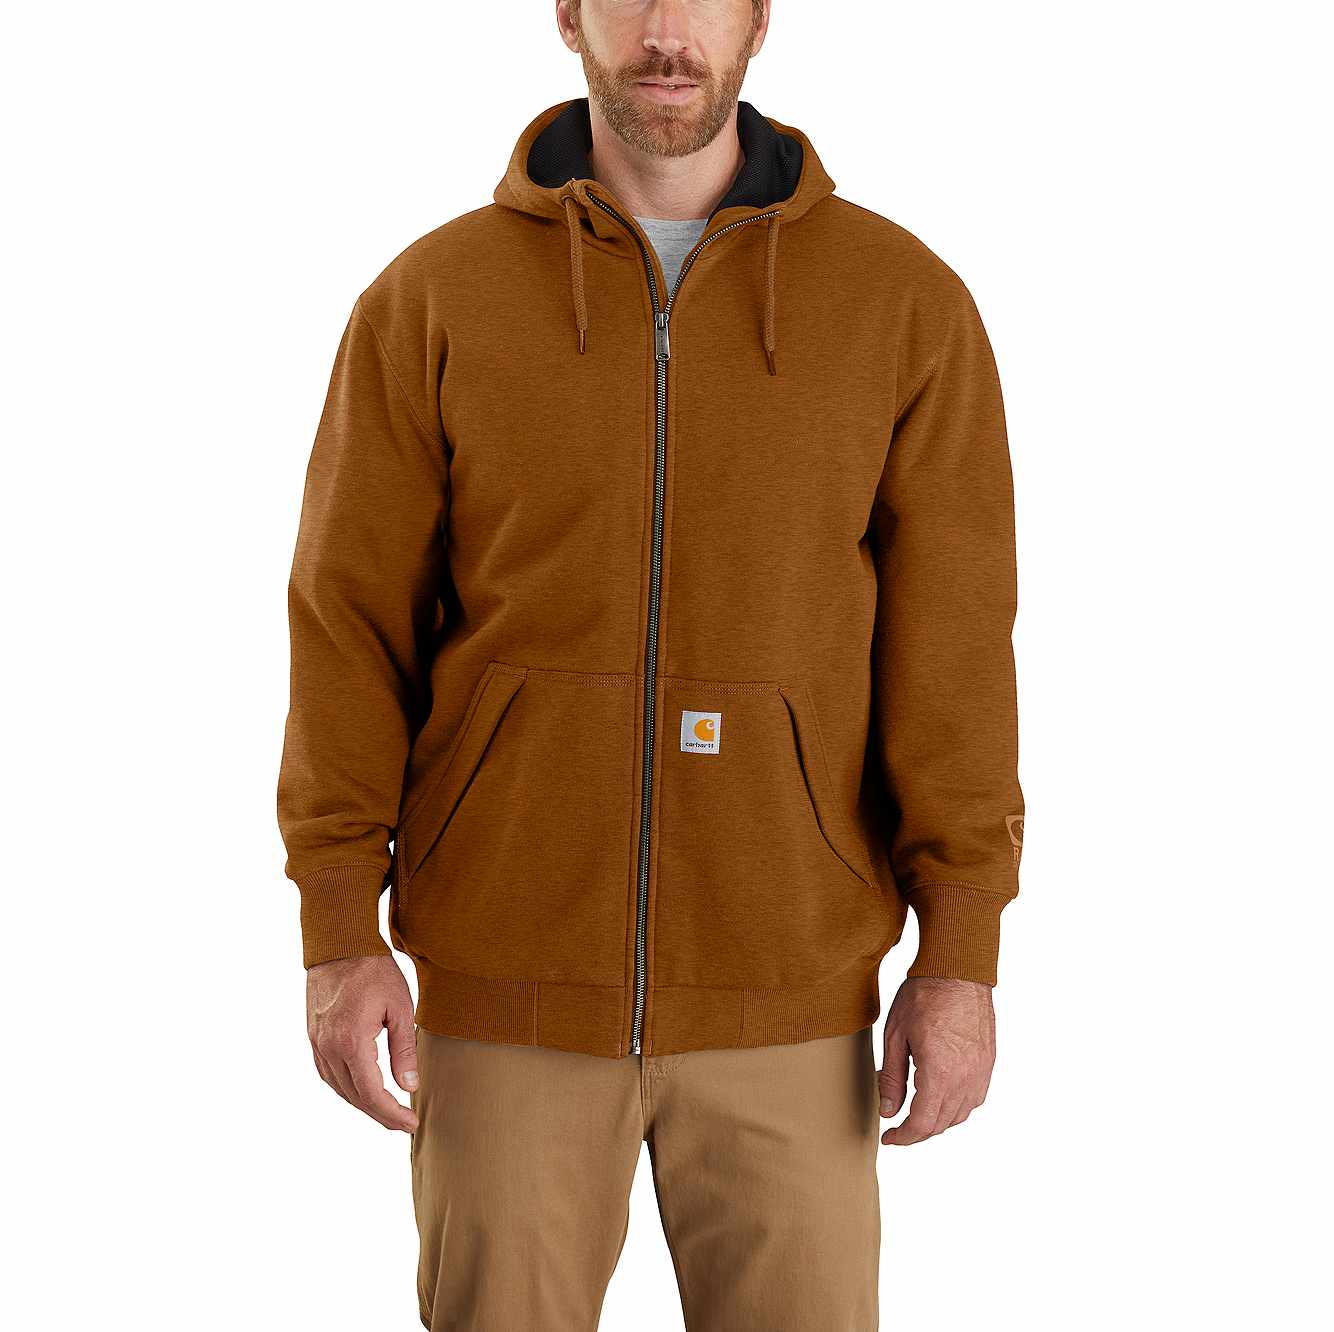 Picture of Carhartt® Rain Defender® Loose Fit Midweight Thermal Lined Full-Zip Hooded Sweatshirt in Oiled Walnut Heather